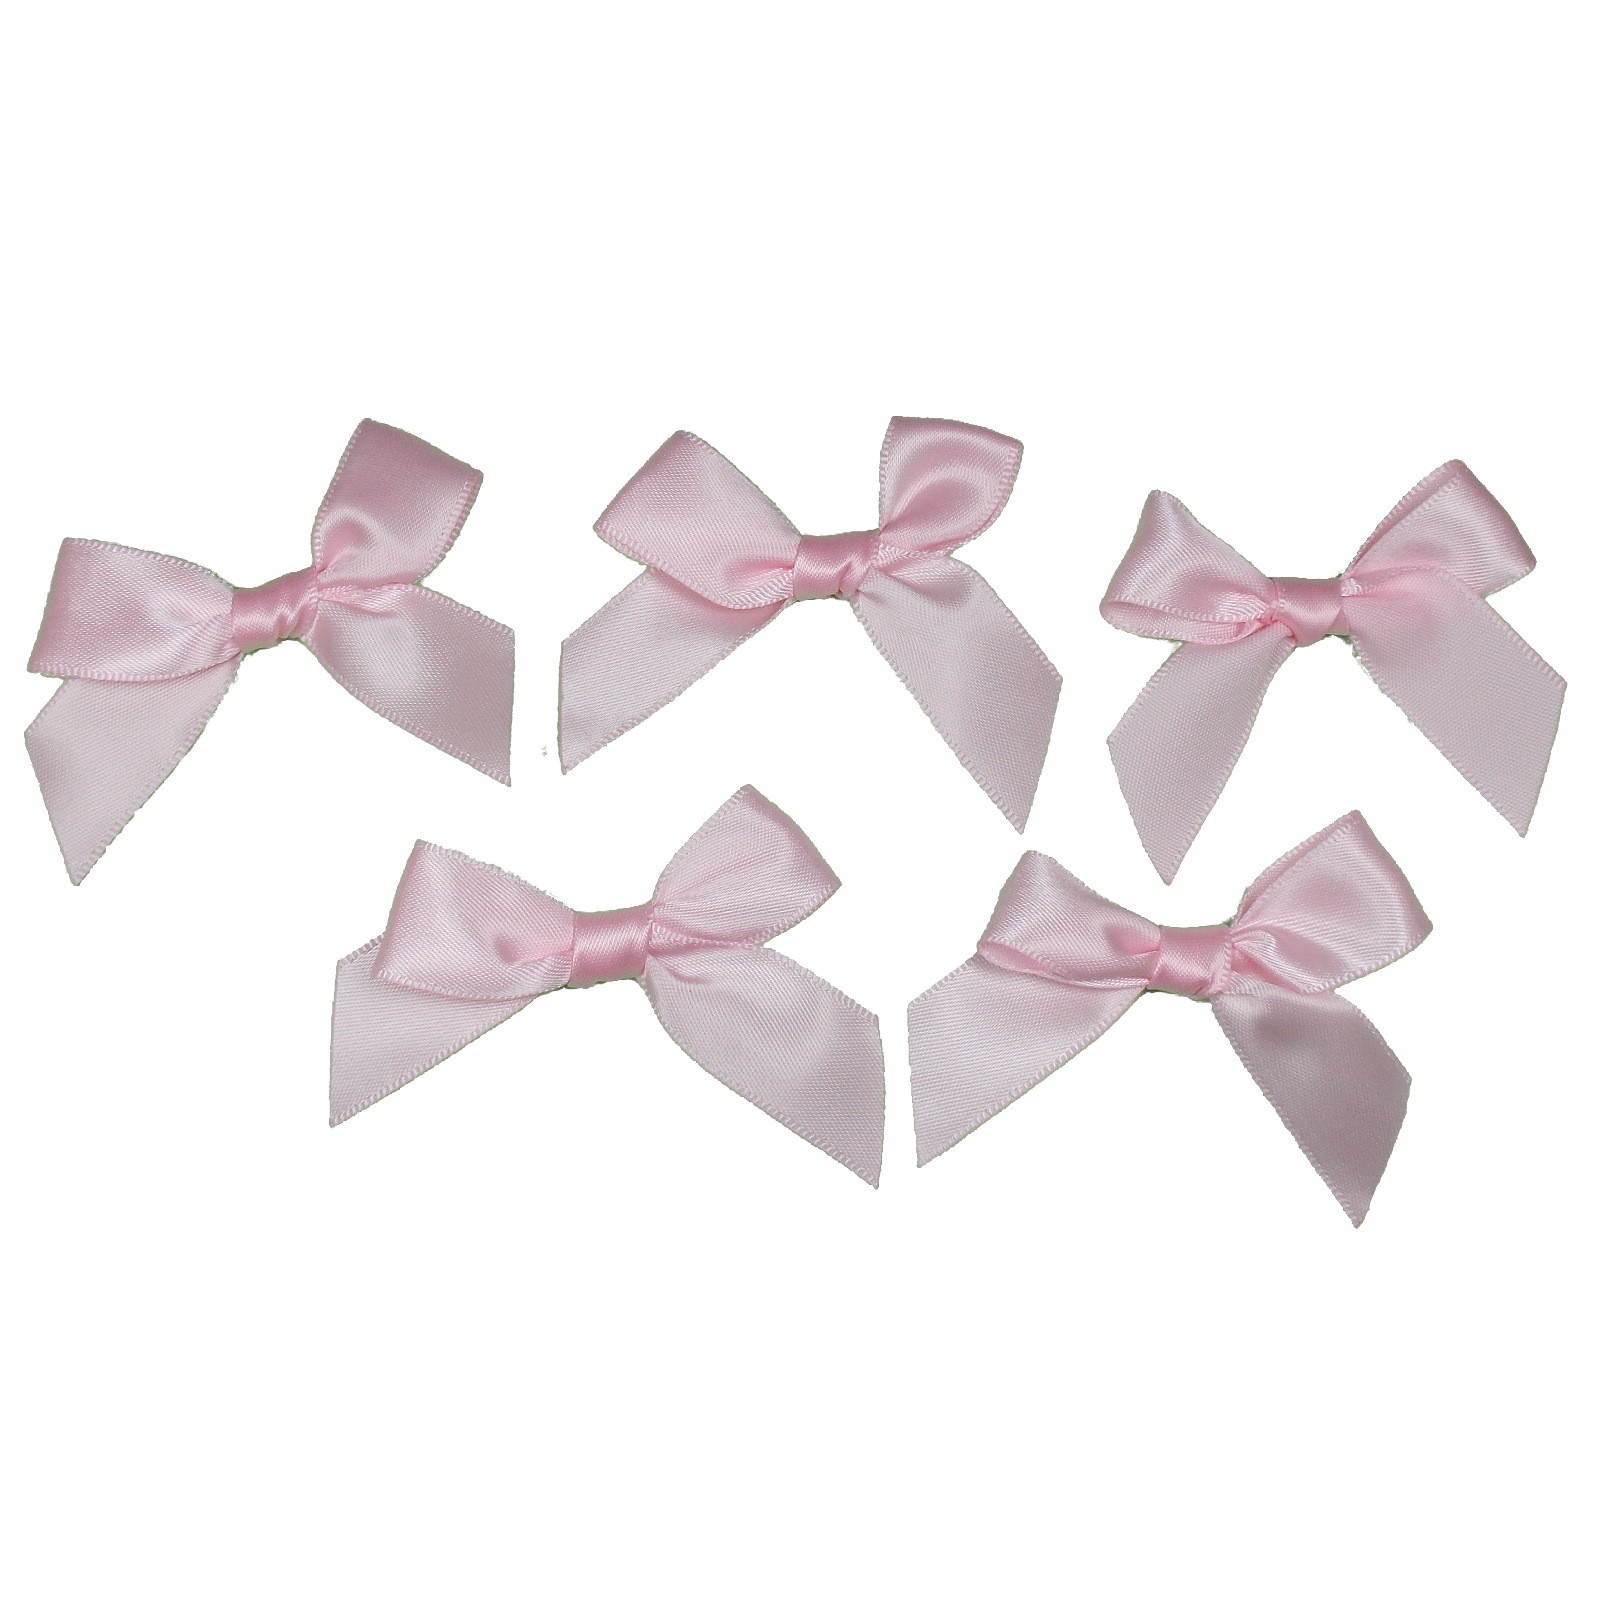 Satin Ribbon Bows approx 5.5cm wide Pale Pink Pack of 5